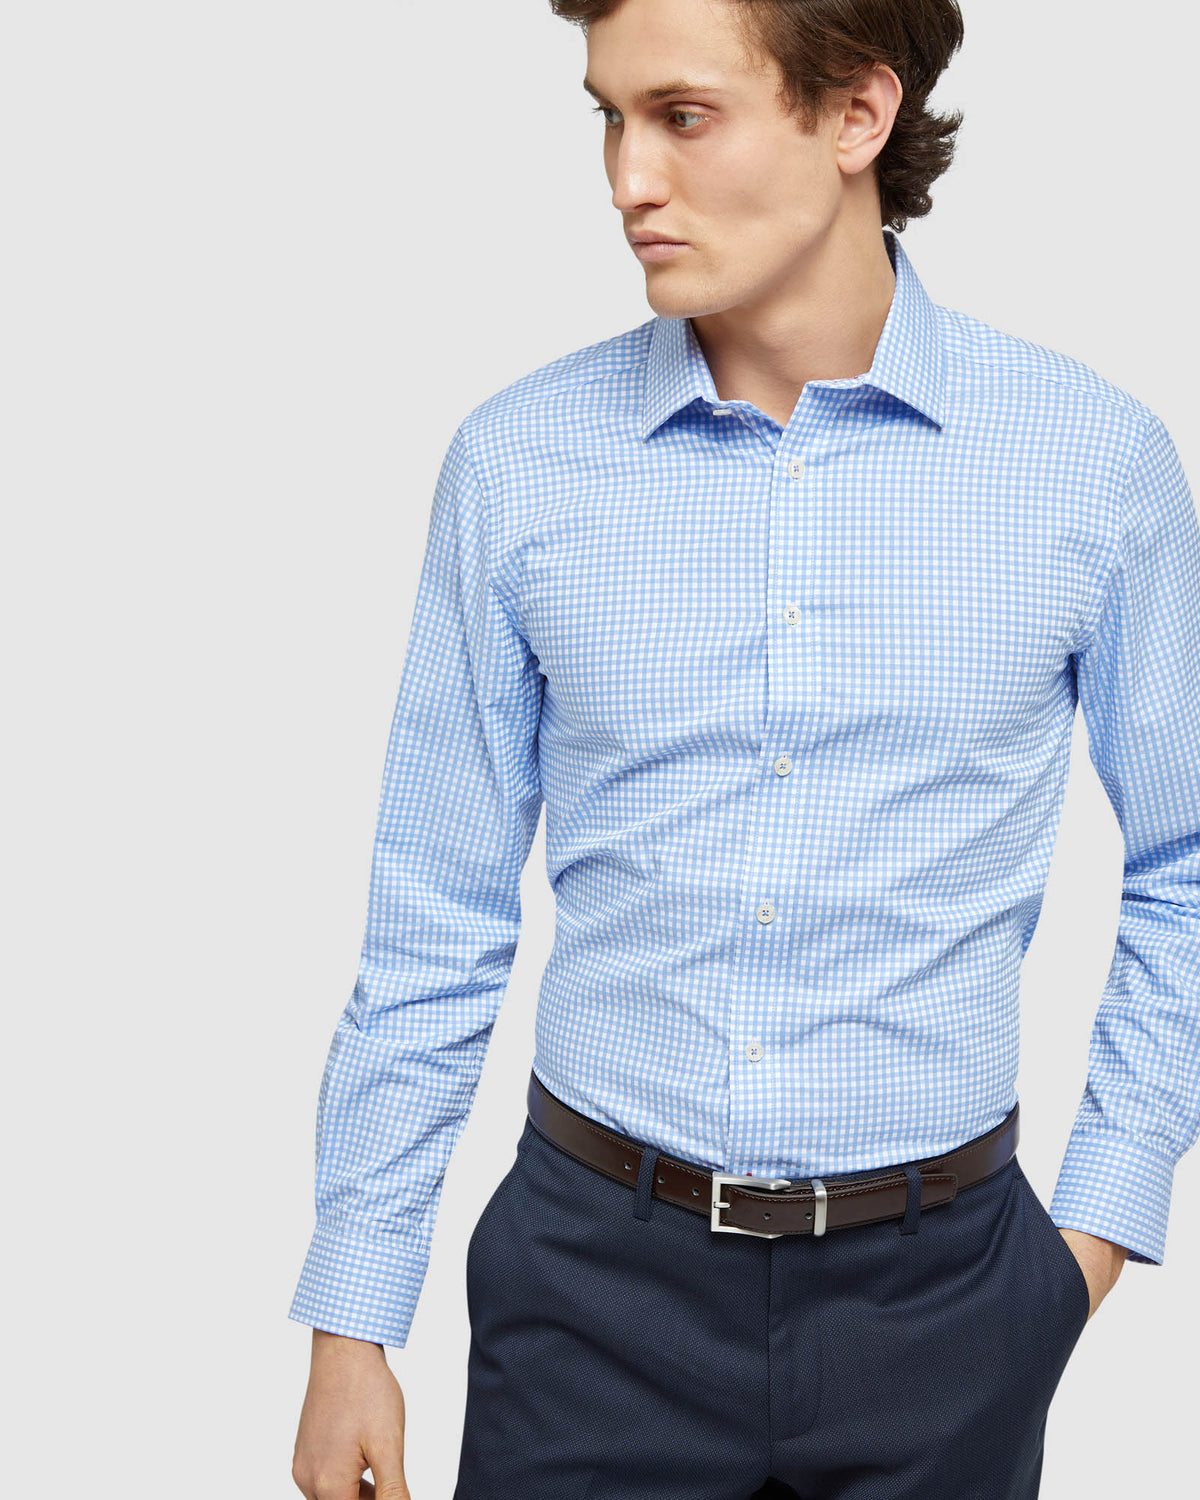 BECKTON DOBBY CHECKED SHIRT BLUE